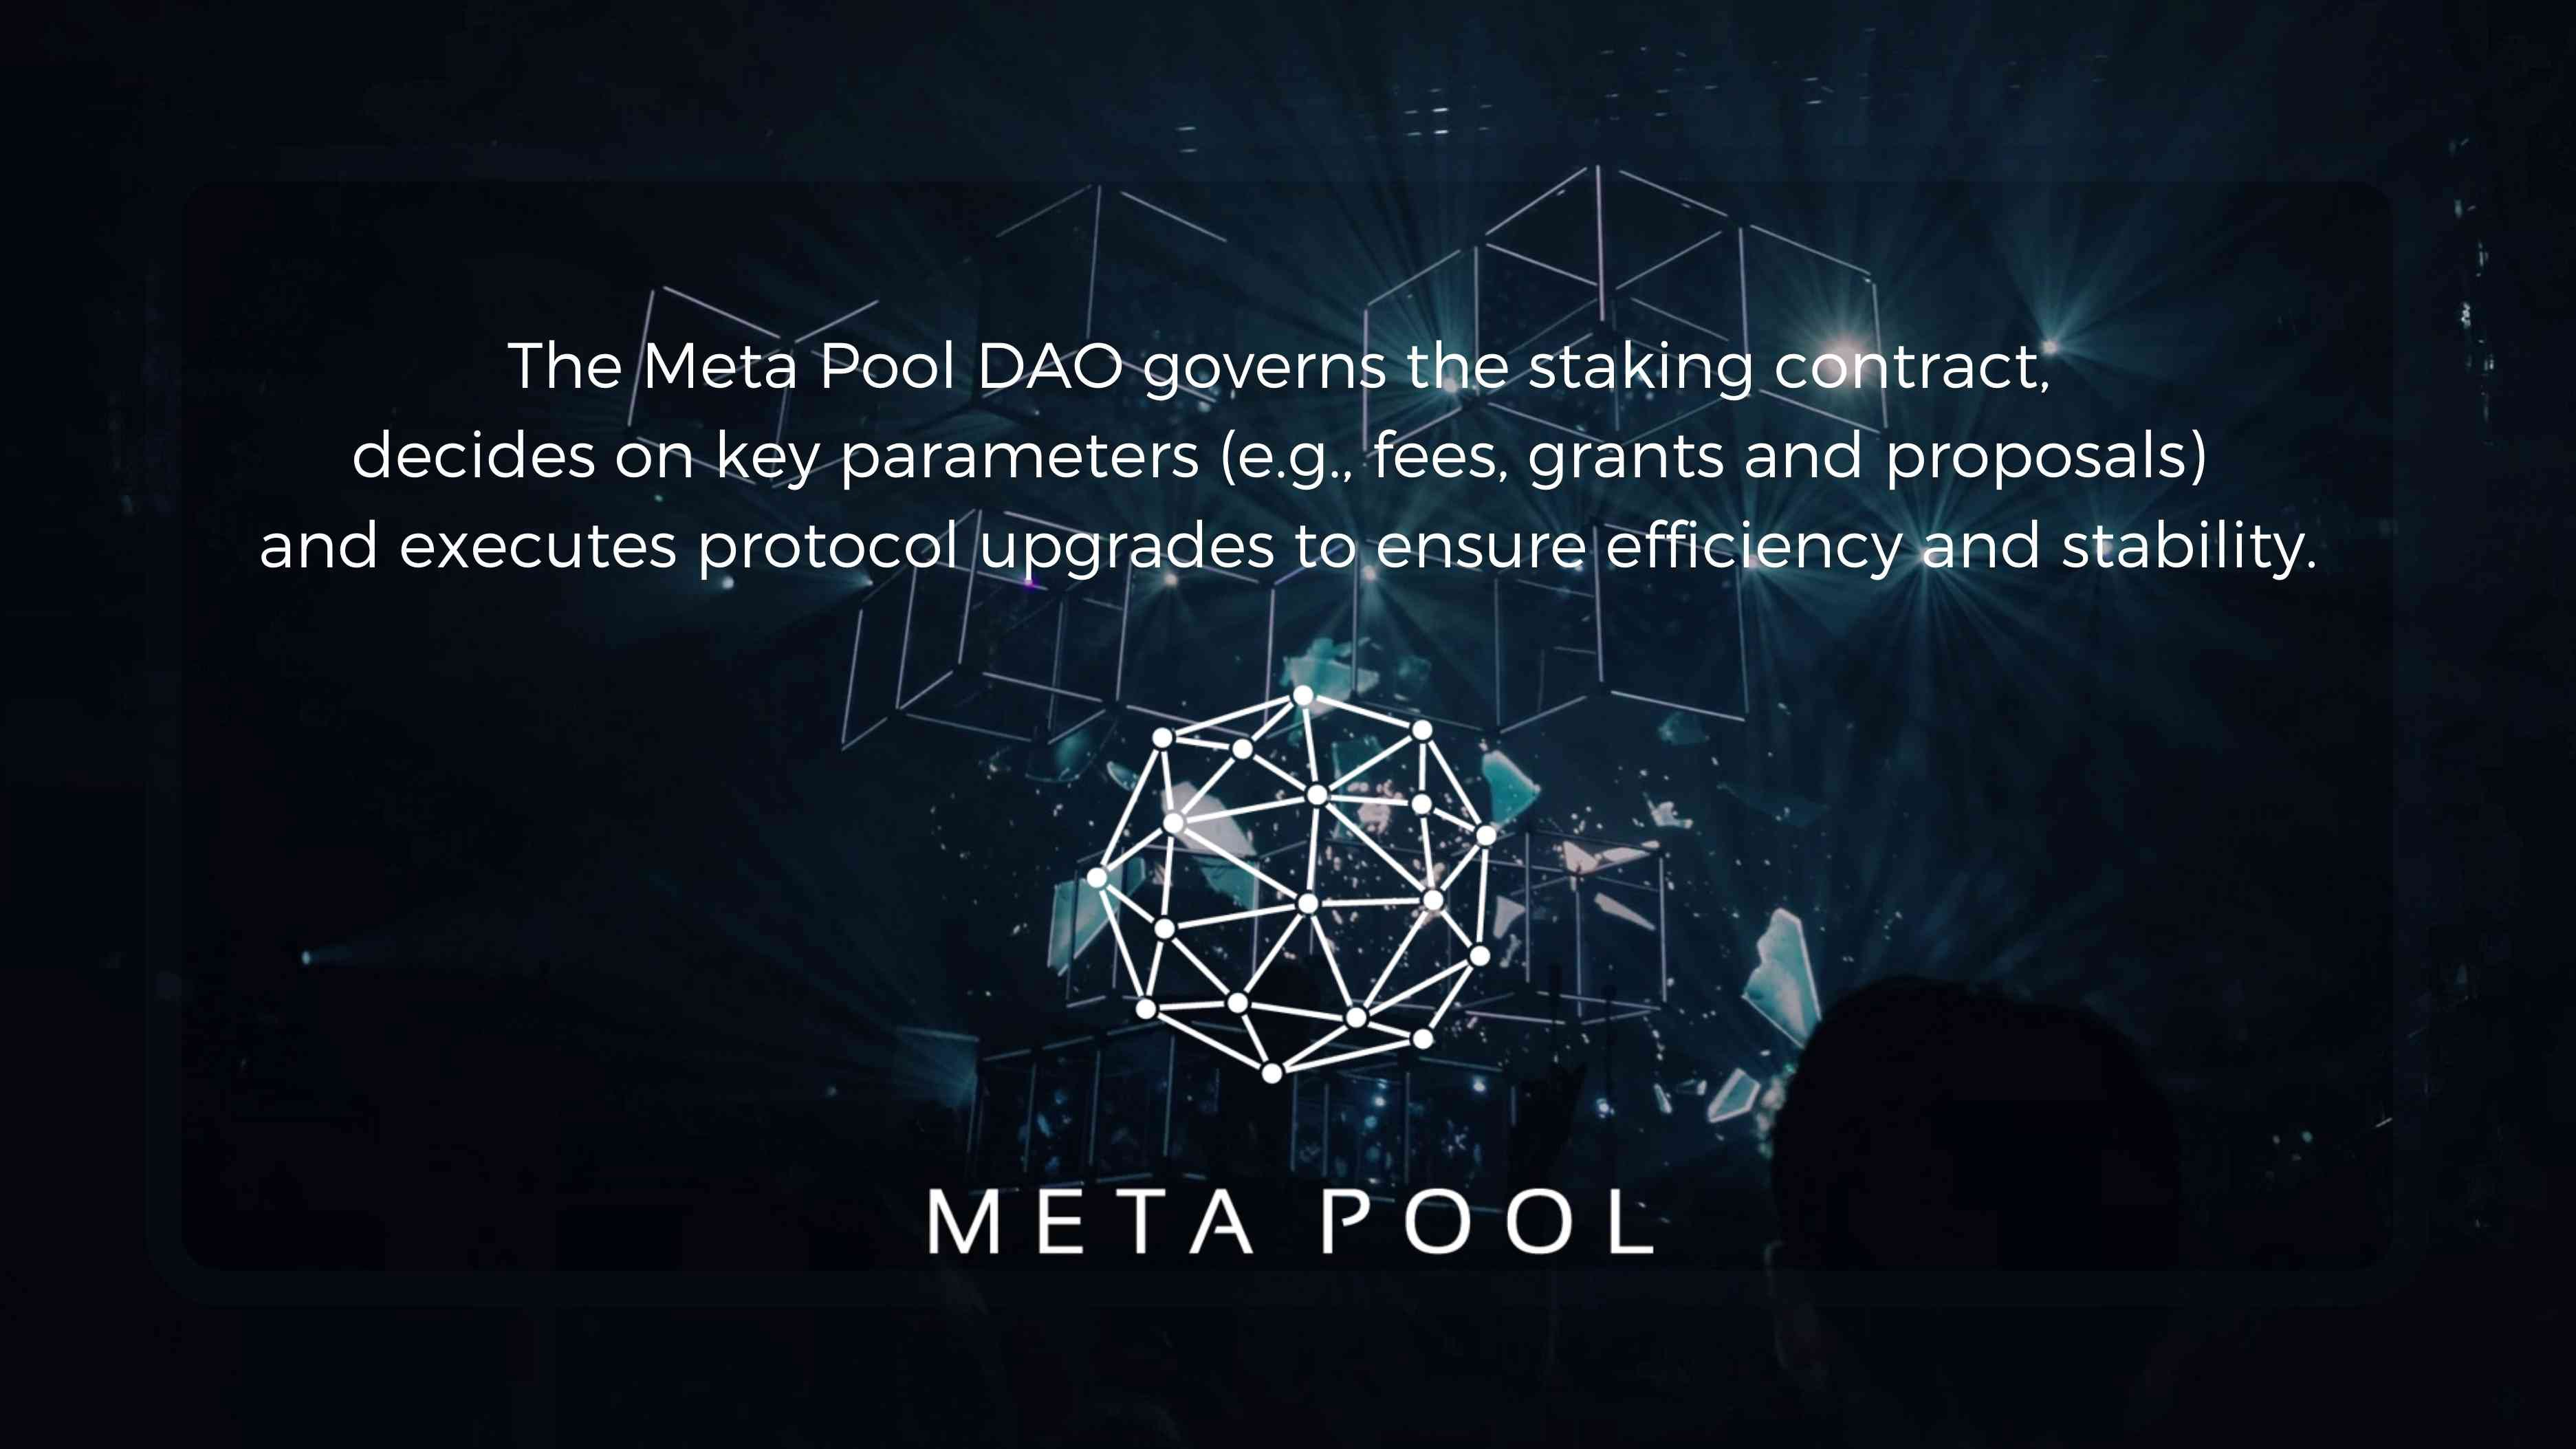 Meta Pool DAO governs the staking contract, decides on key parameters and executes protocol upgrades to ensure efficiency and stability.